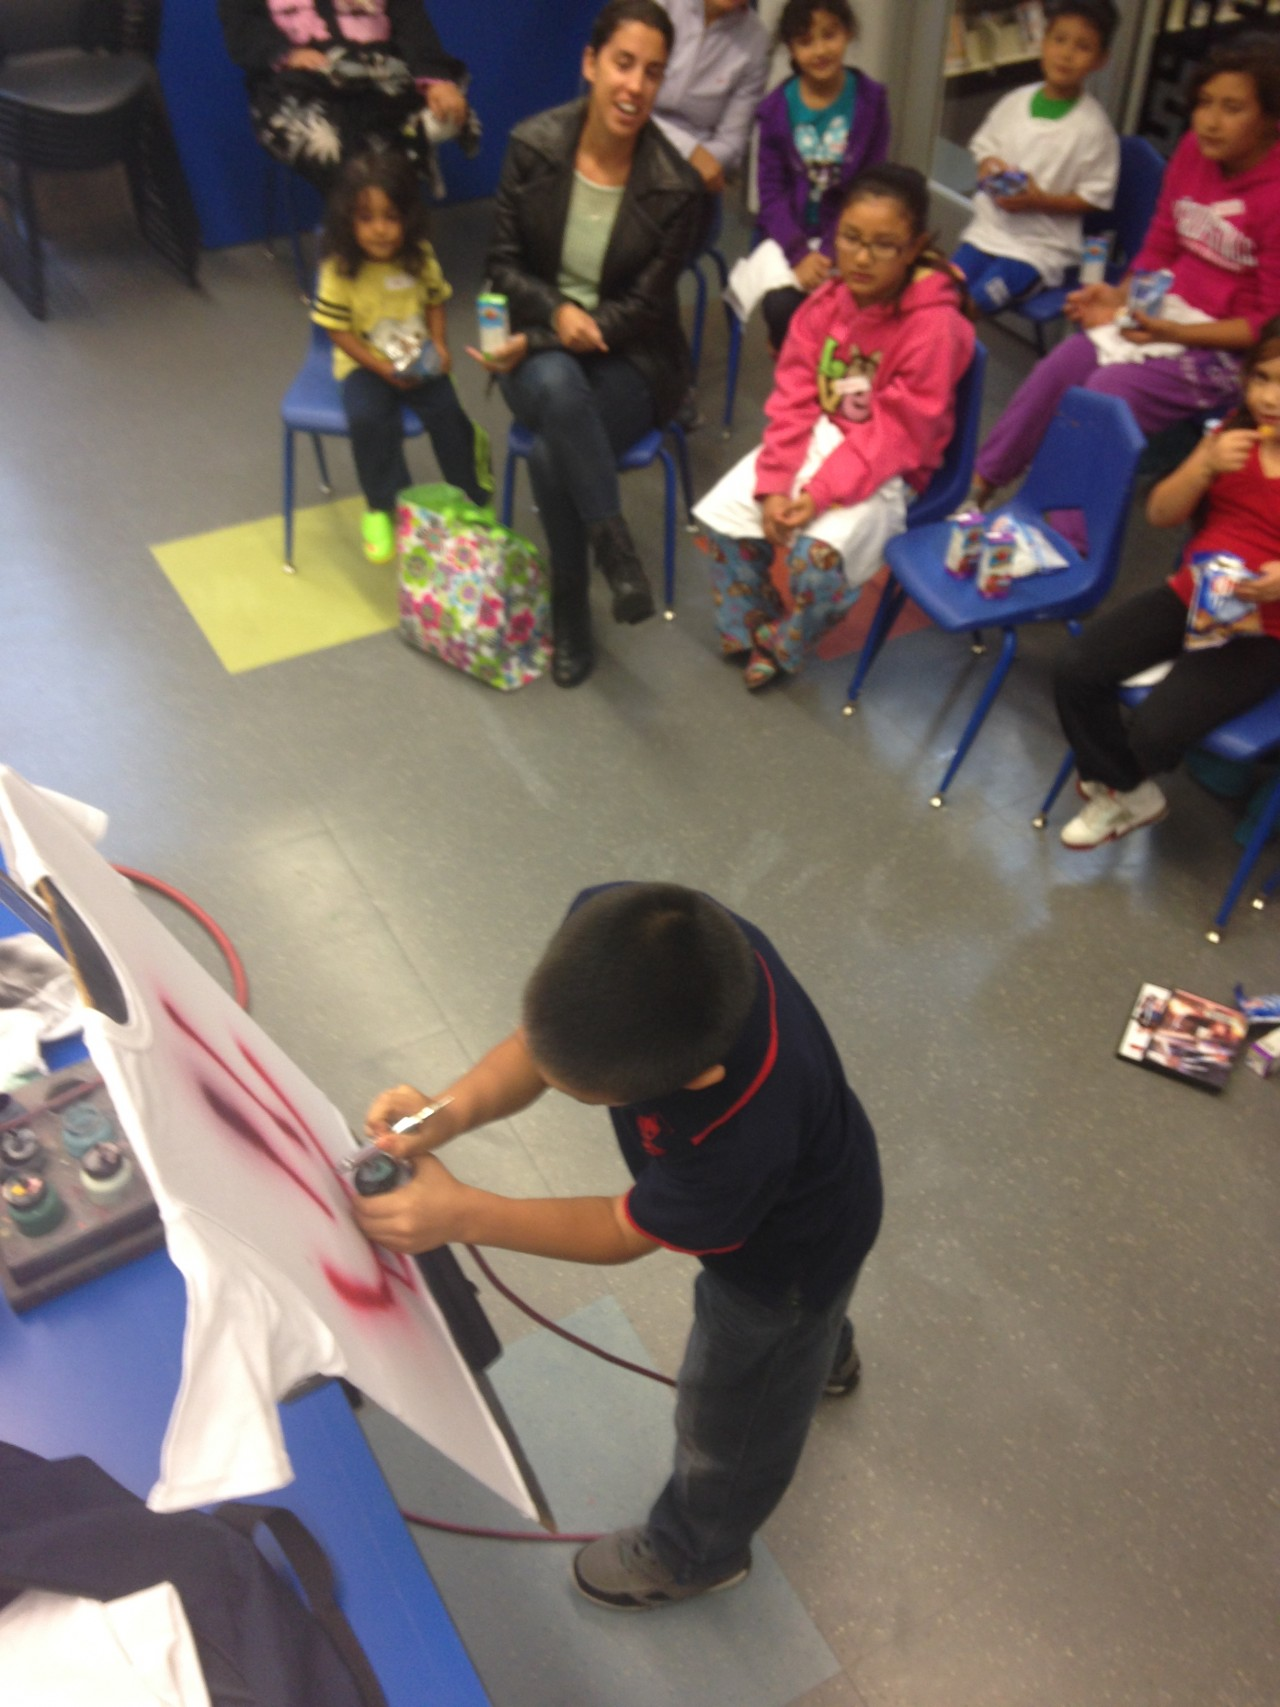 A little boy practicing his airbrushing techniques in the Summer Learning Program put on by the Denver Library